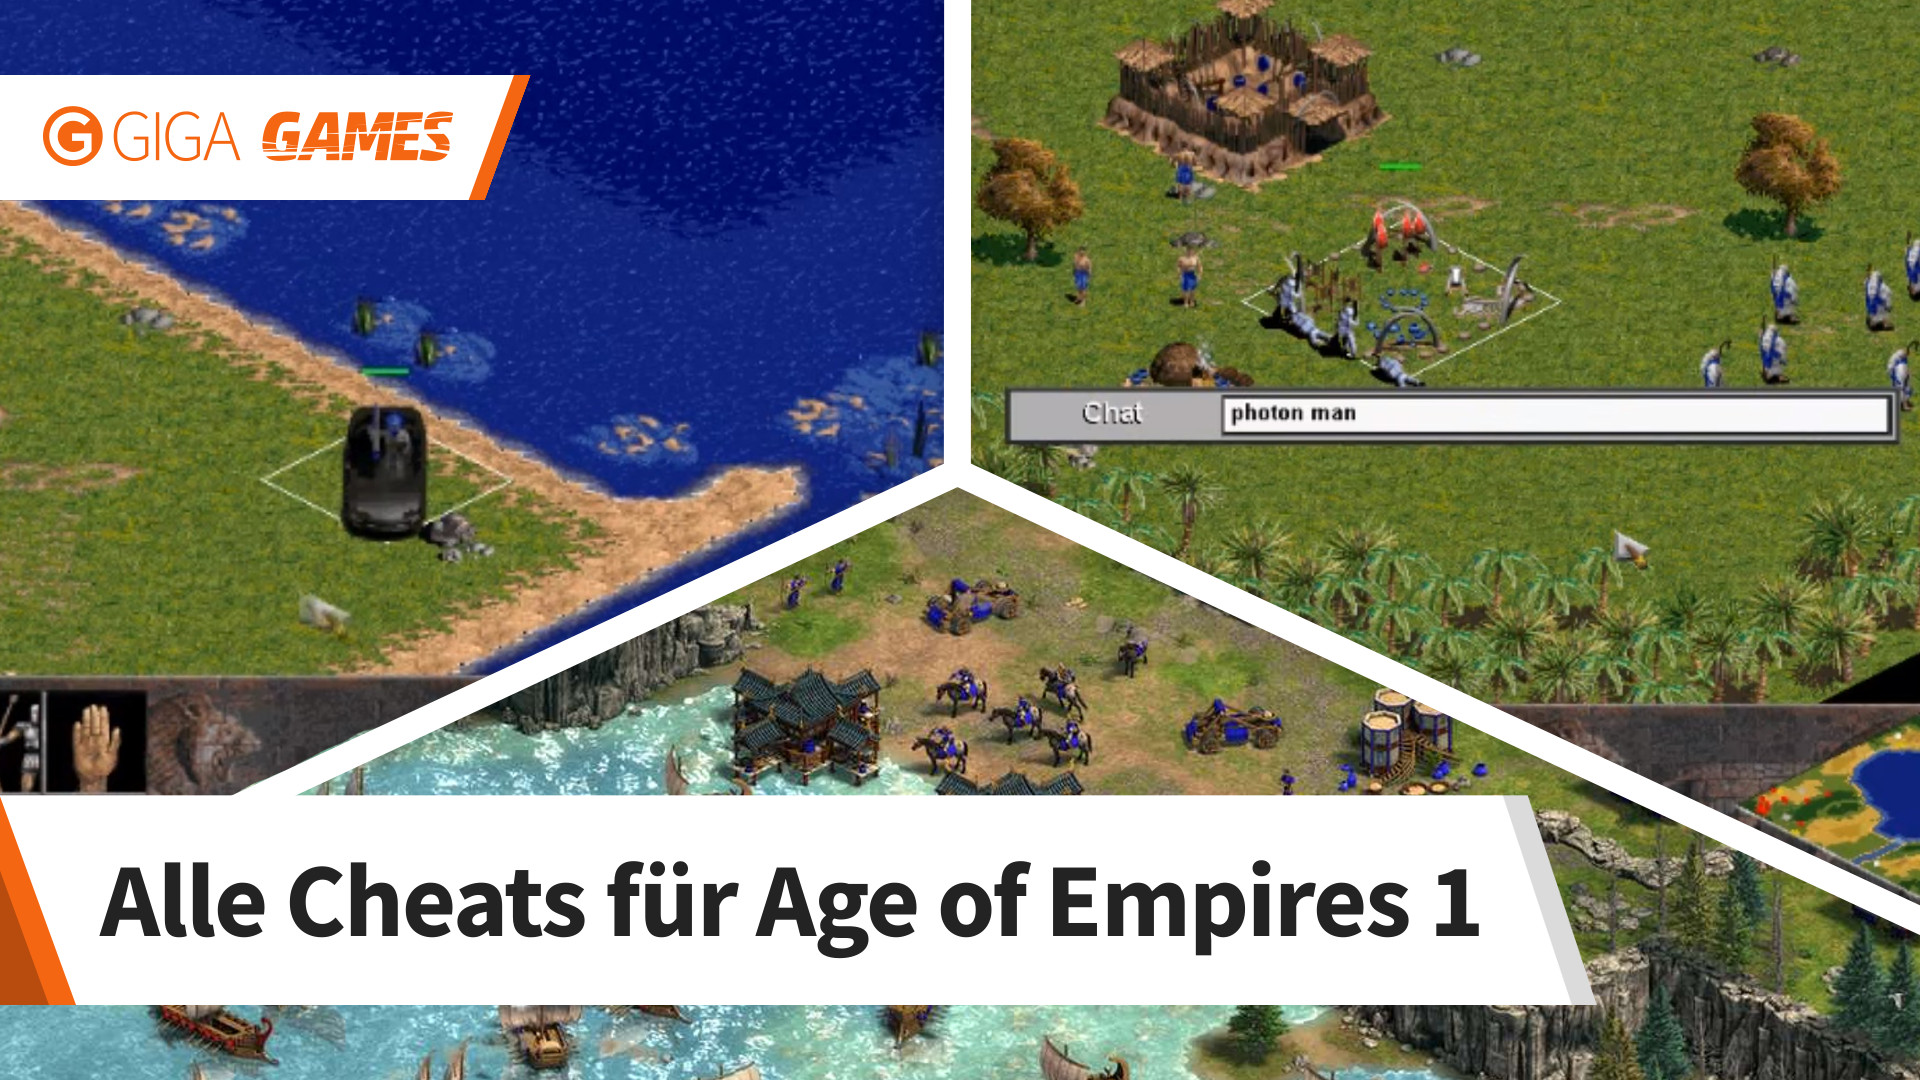 Age of empires photon man Age of Empires Cheats & Codes for PC - m